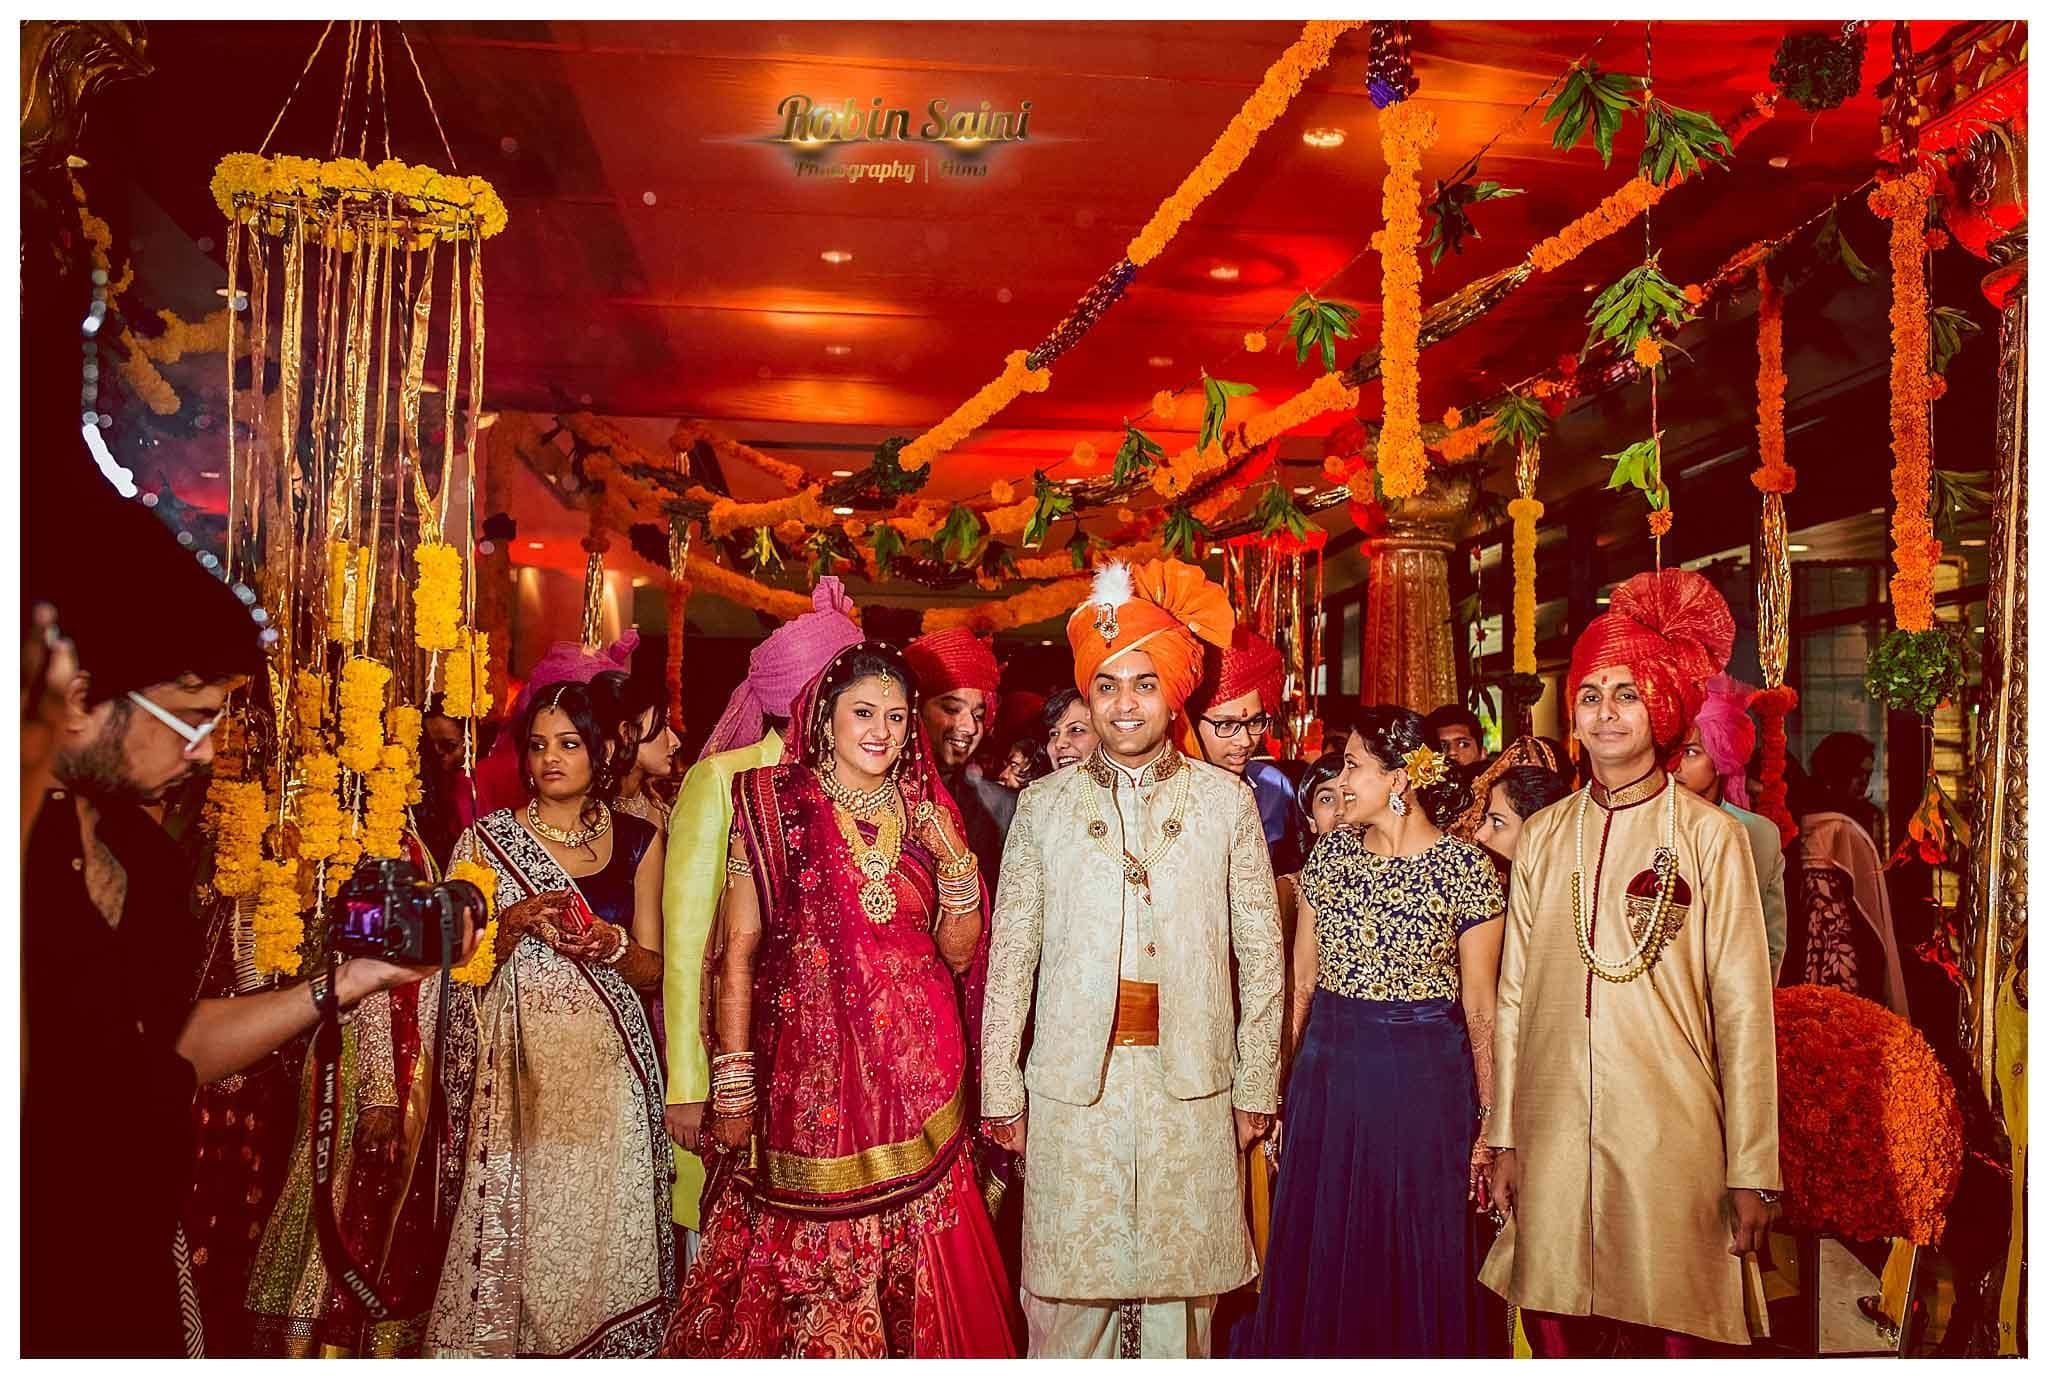 beautiful wedding outfits:robin saini photography